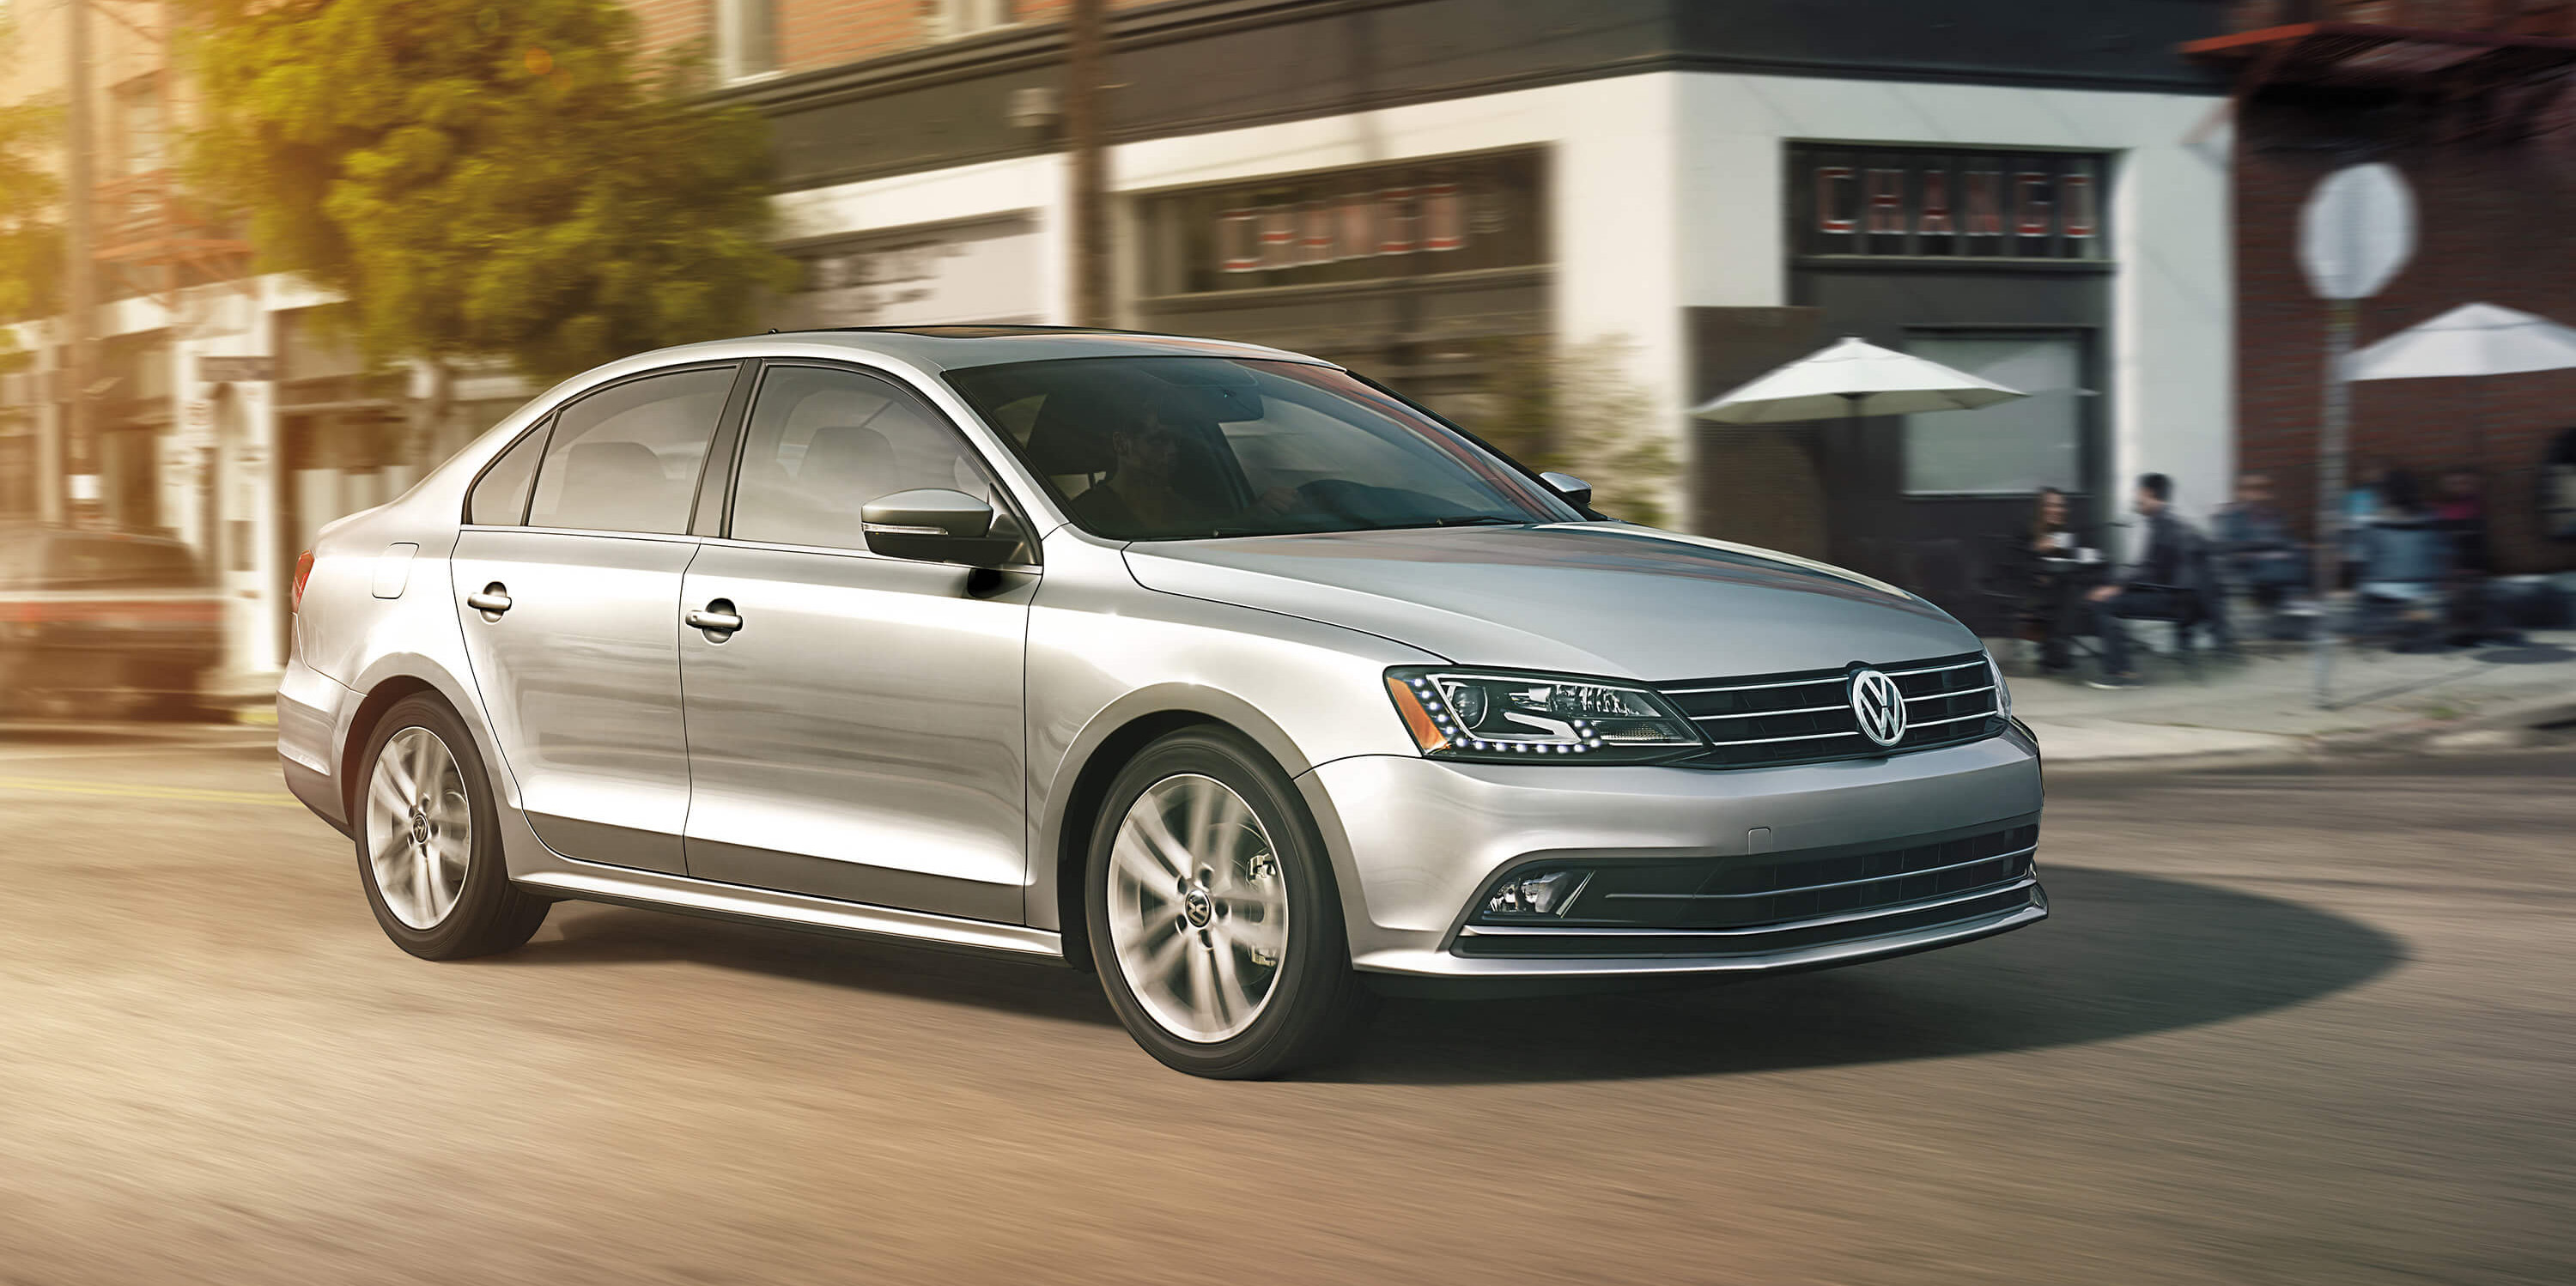 vw finance volkswagen now on jetta and web deals offers htm lease ma kelly boston sale danvers at new